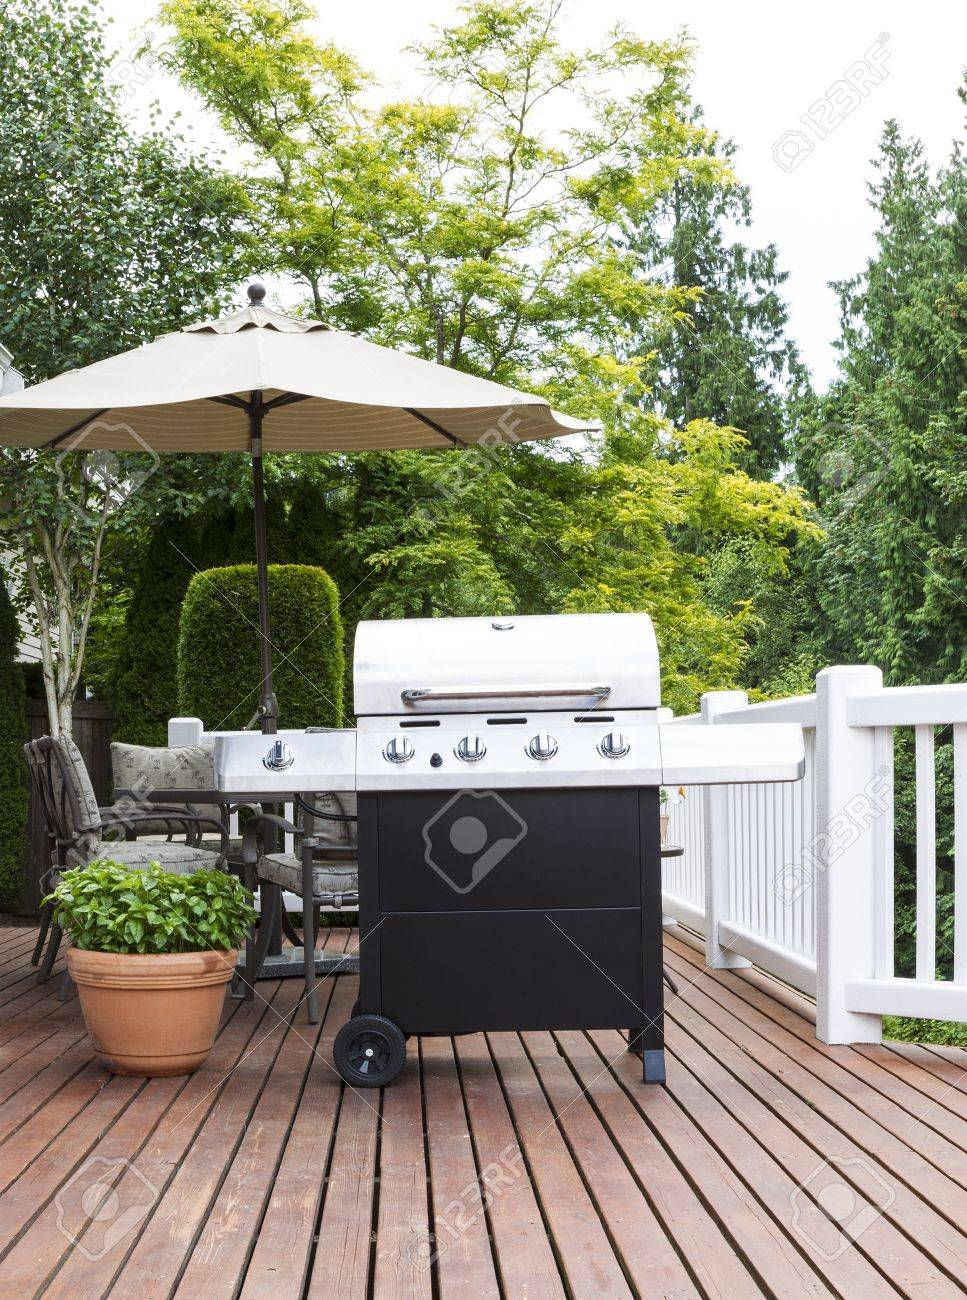 Stock Photo   Vertical Photo Of Large Barbecue Cooker On Cedar Deck With  Patio Furniture And Trees In Background